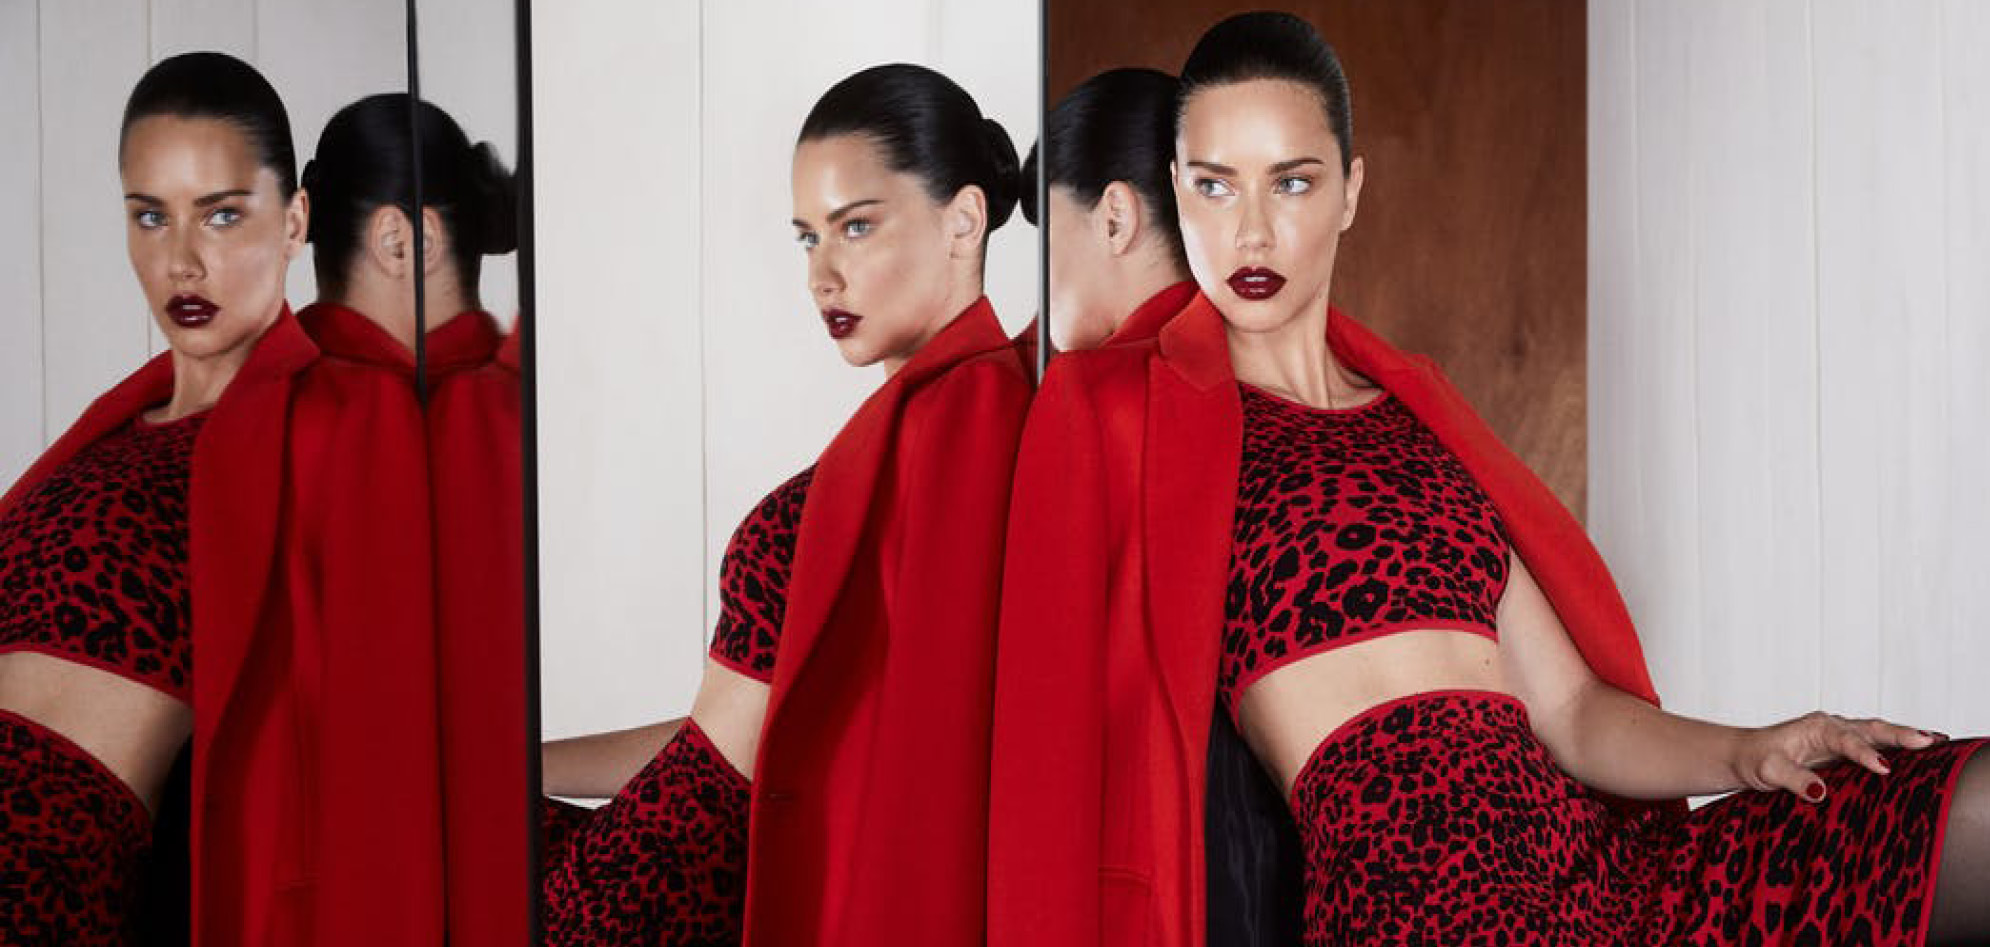 ADRIANA LIMA IS HER OWN MUSE IN BCBGMAXAZRIA'S FALL 2019 CAMPAIGN